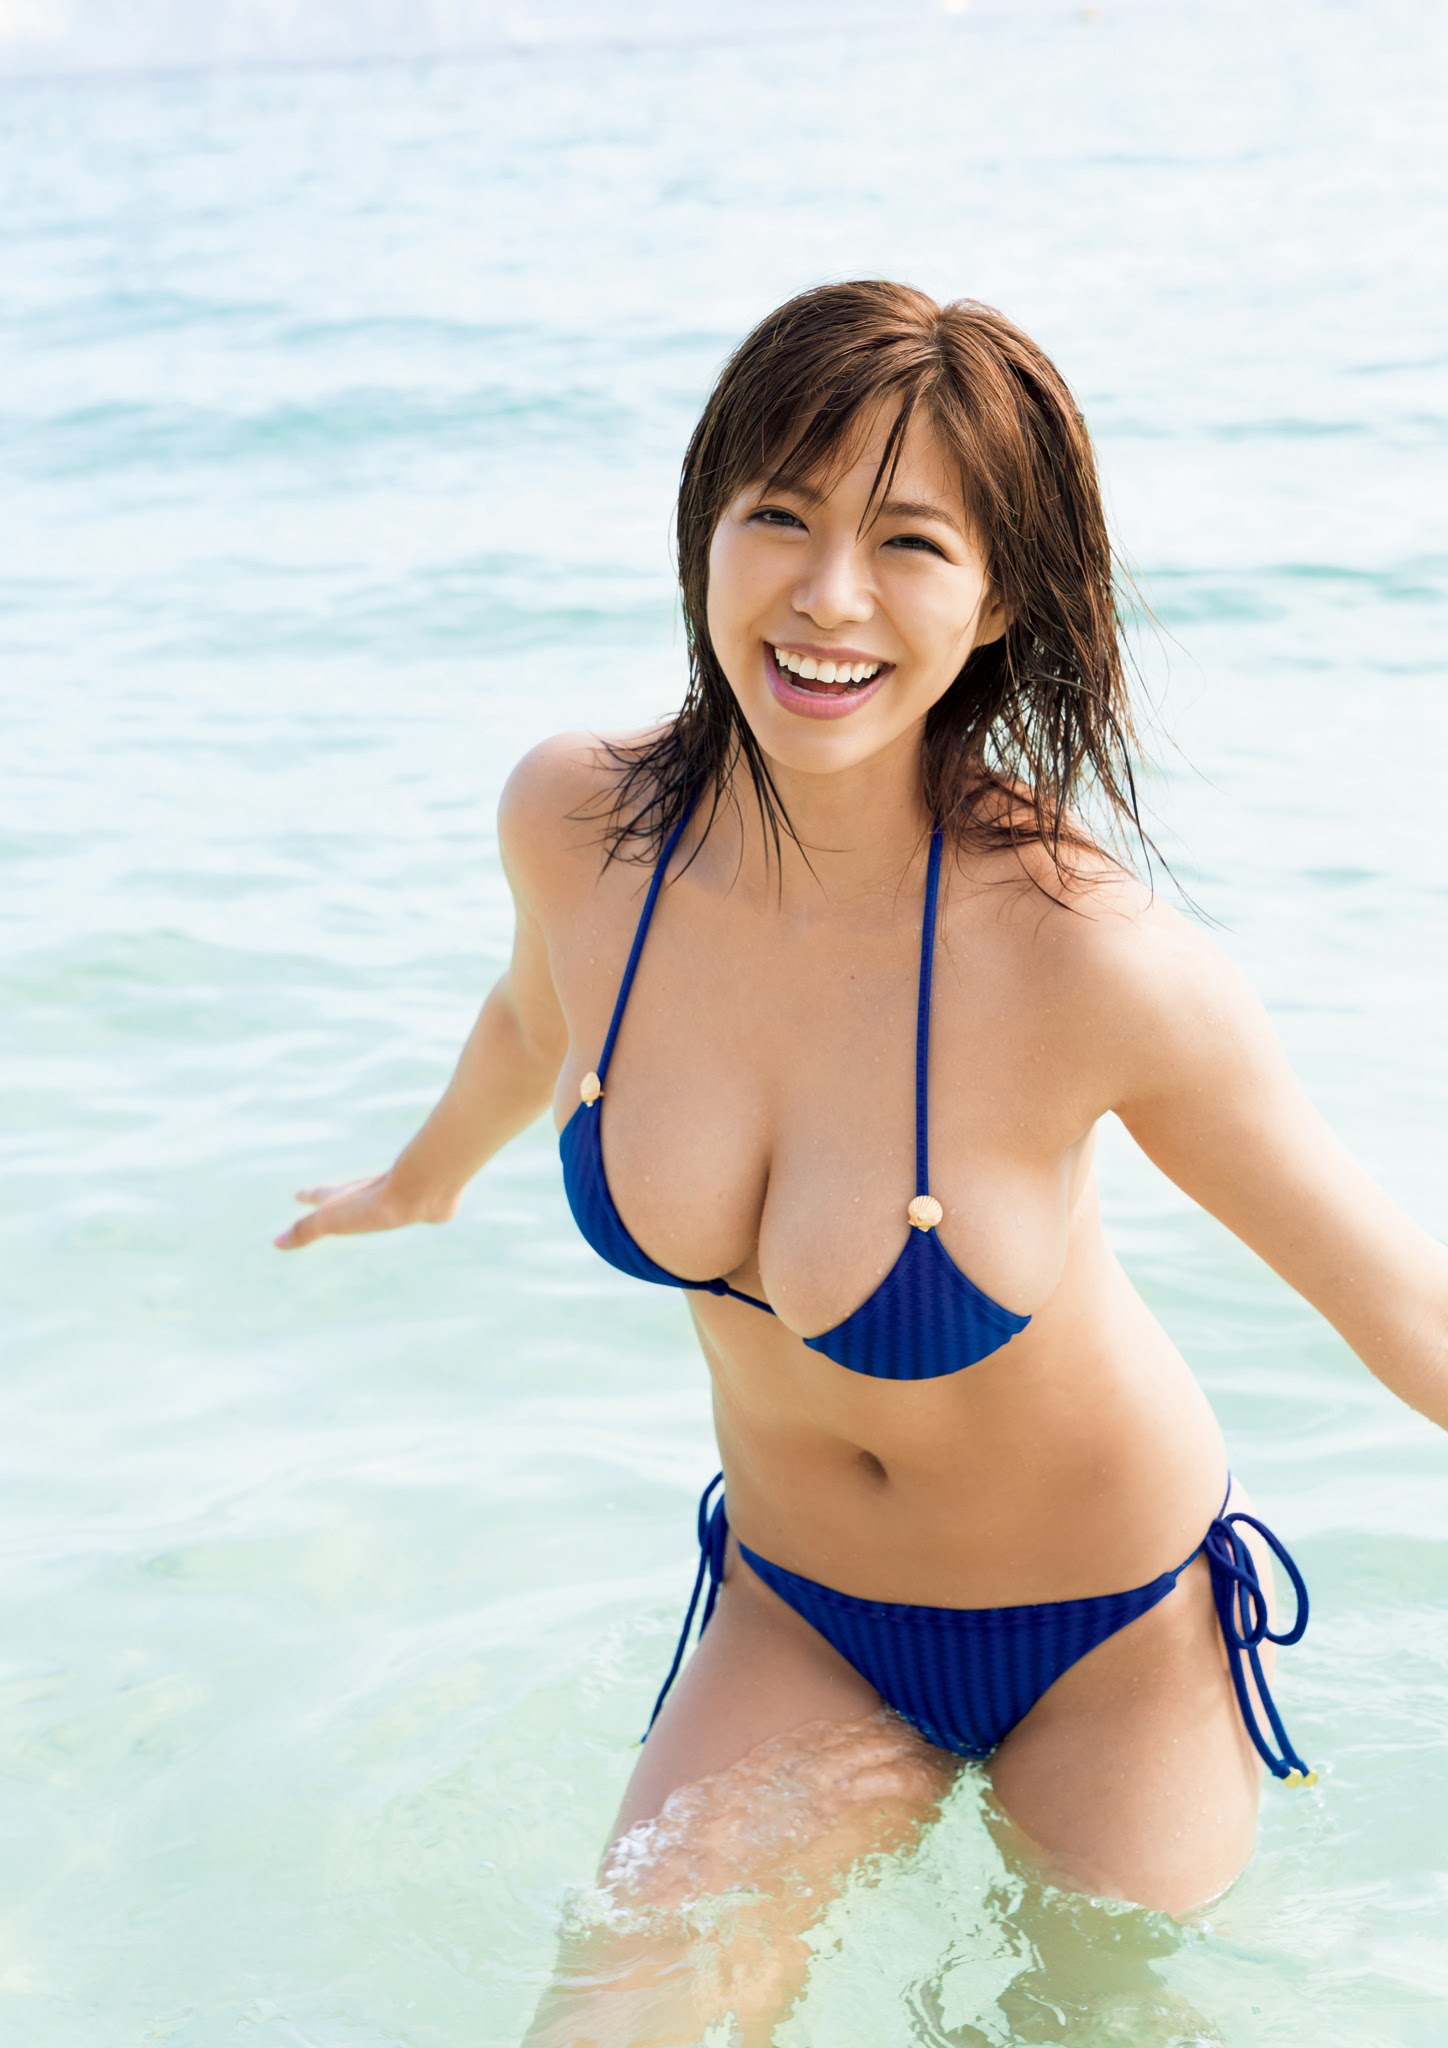 Super body of H cup Minami Wachi 2020 that exposes body and mind in tropical Thailand017